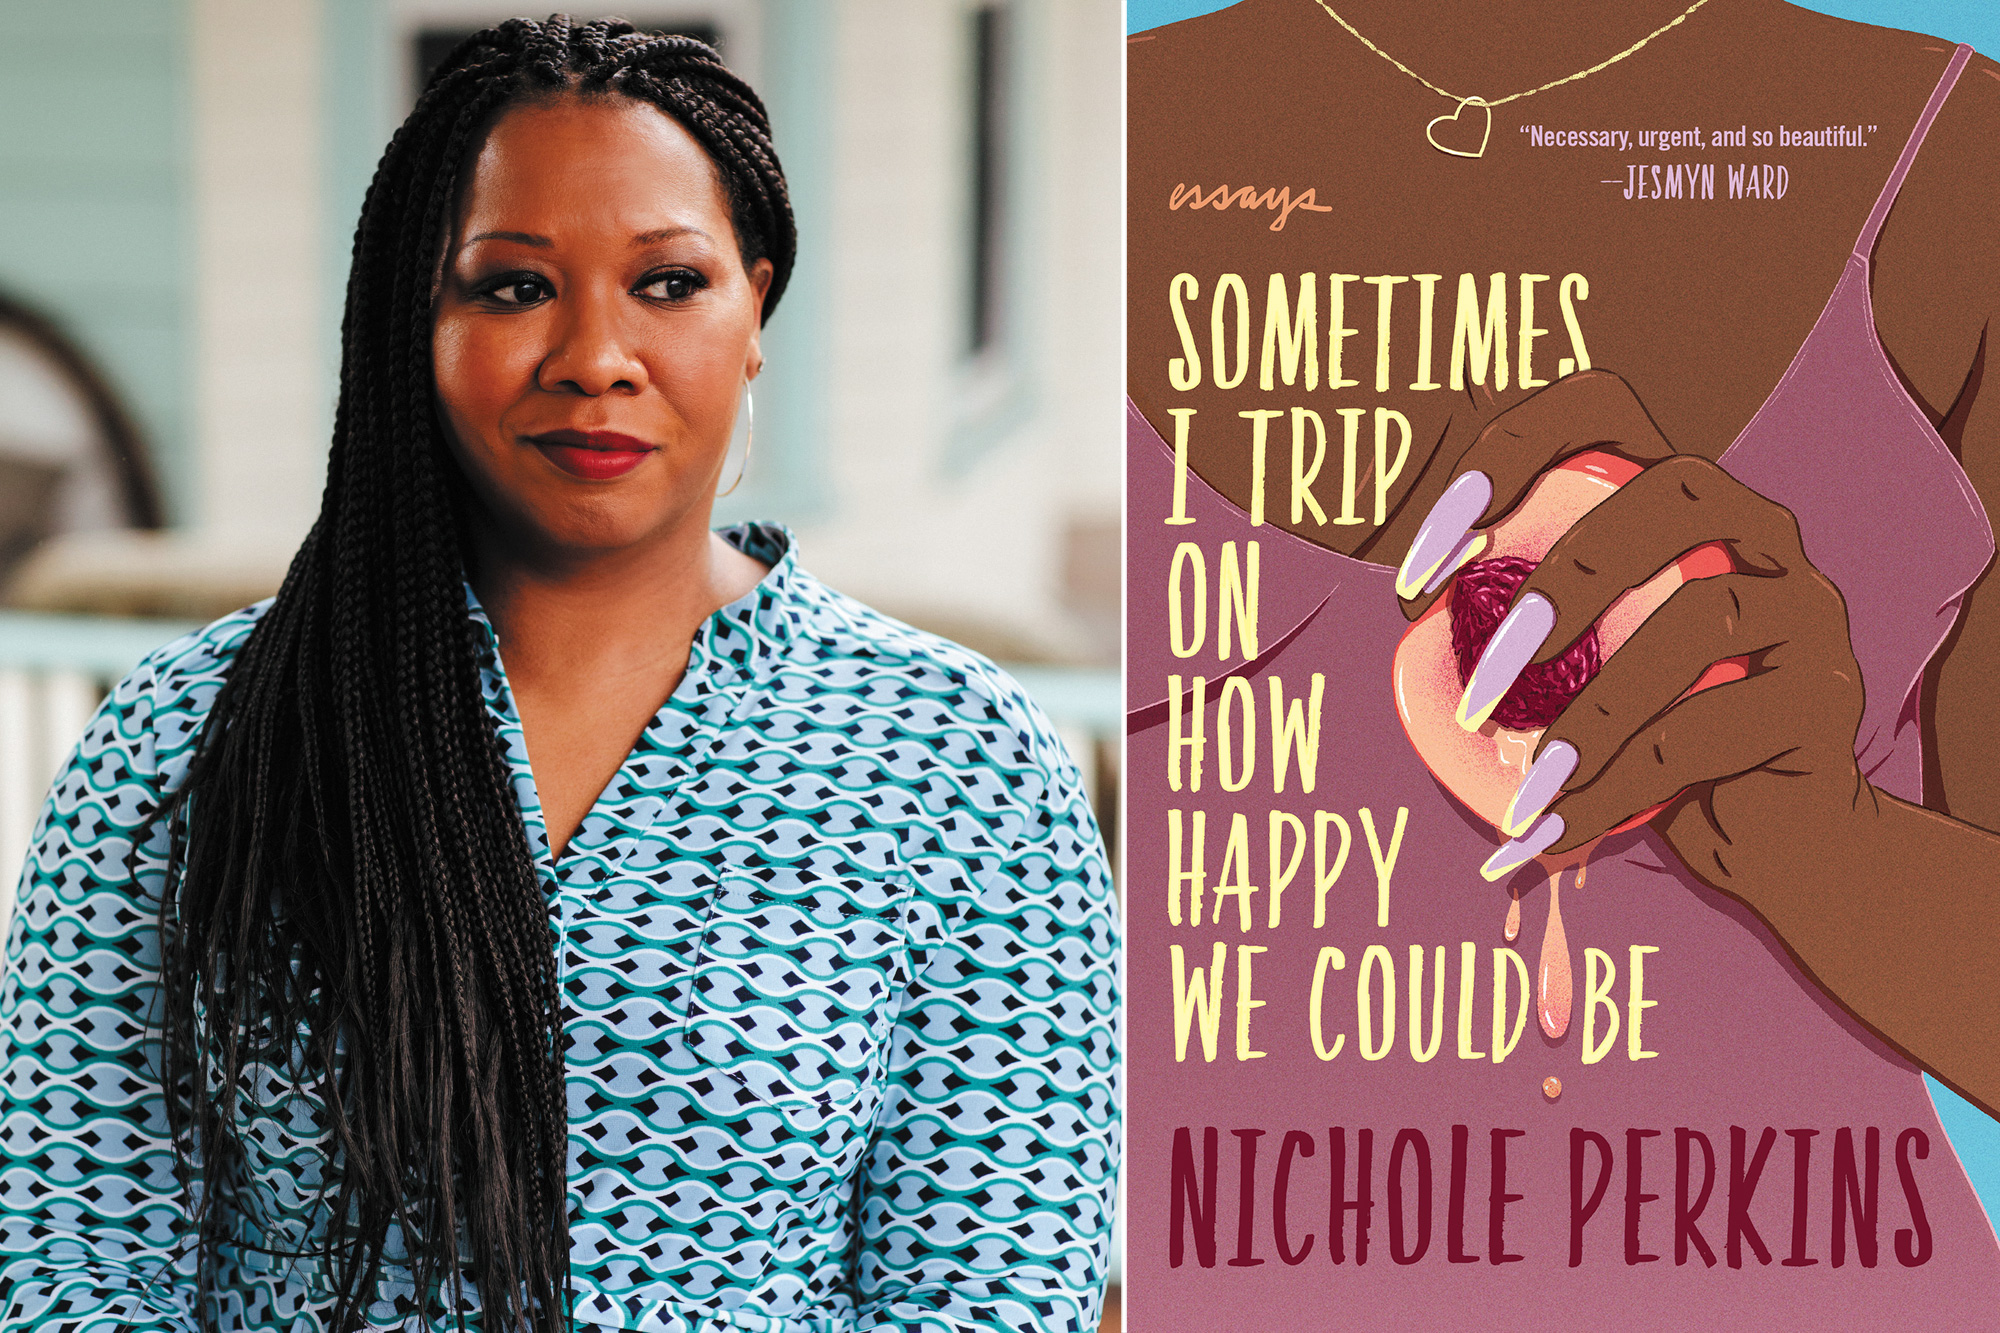 Nichole Perkins, Sometimes I Trip on How Happy We Could Be